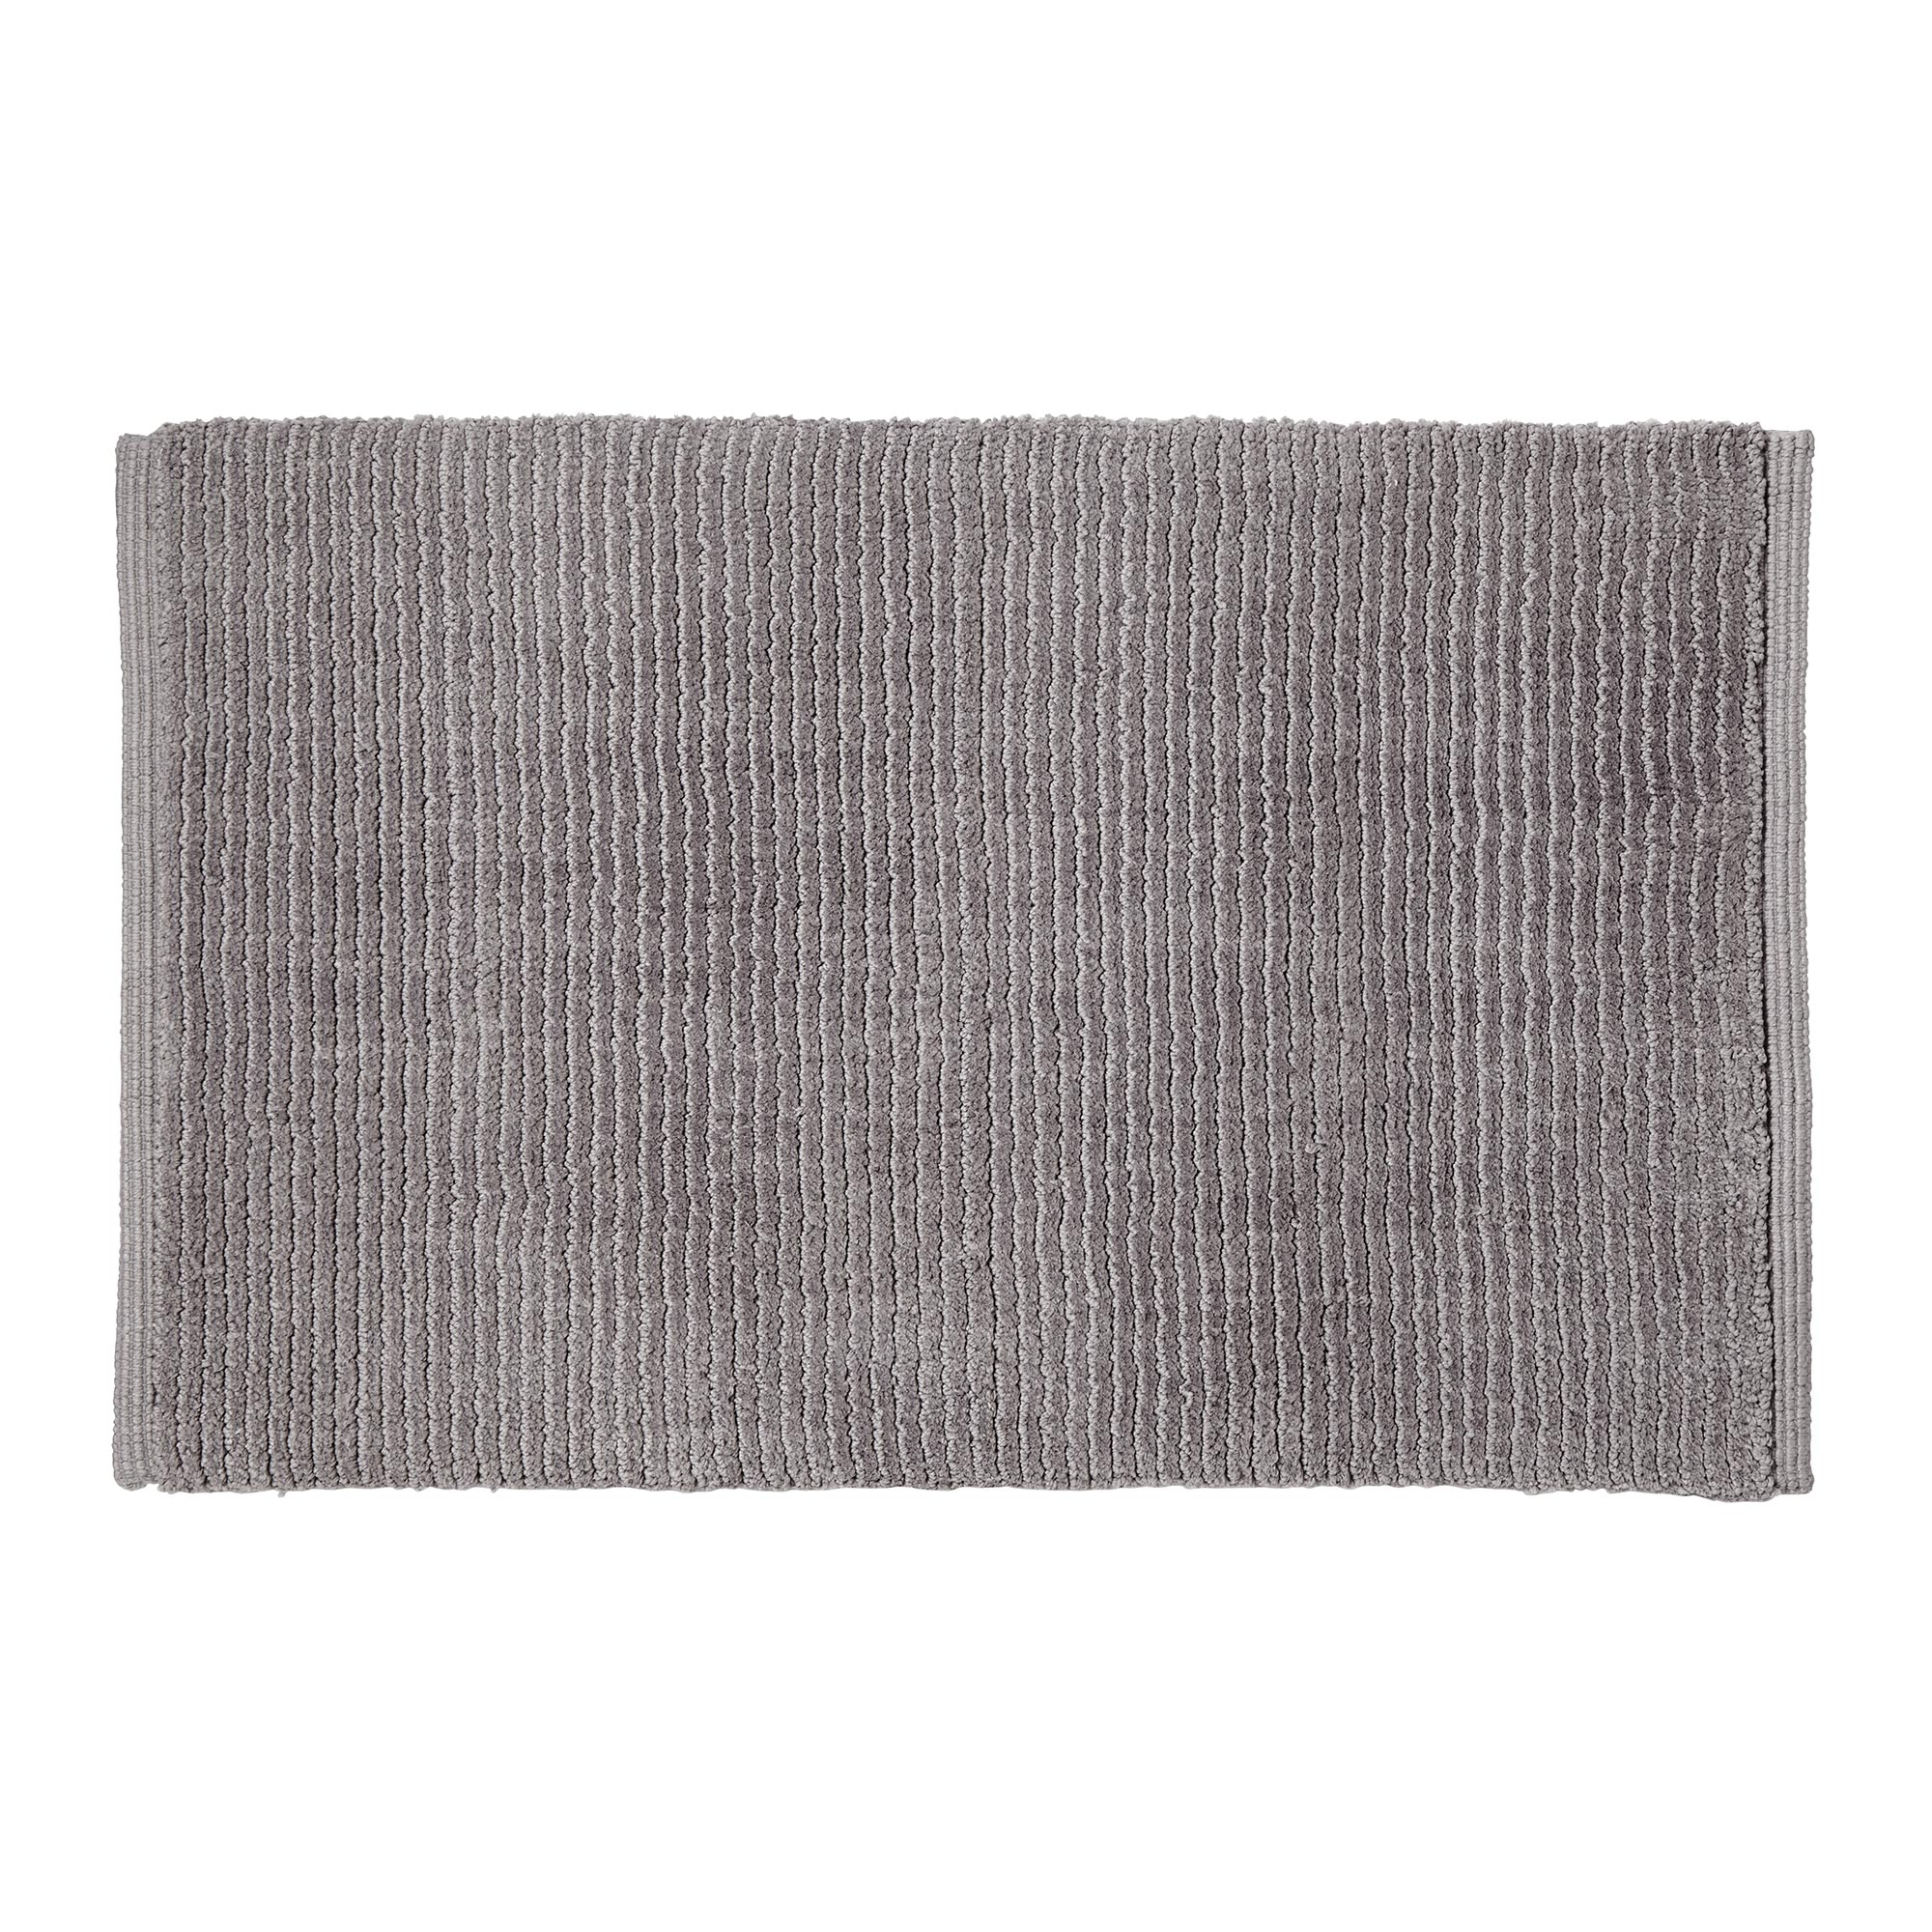 Photo of Regeneration bath mat charcoal